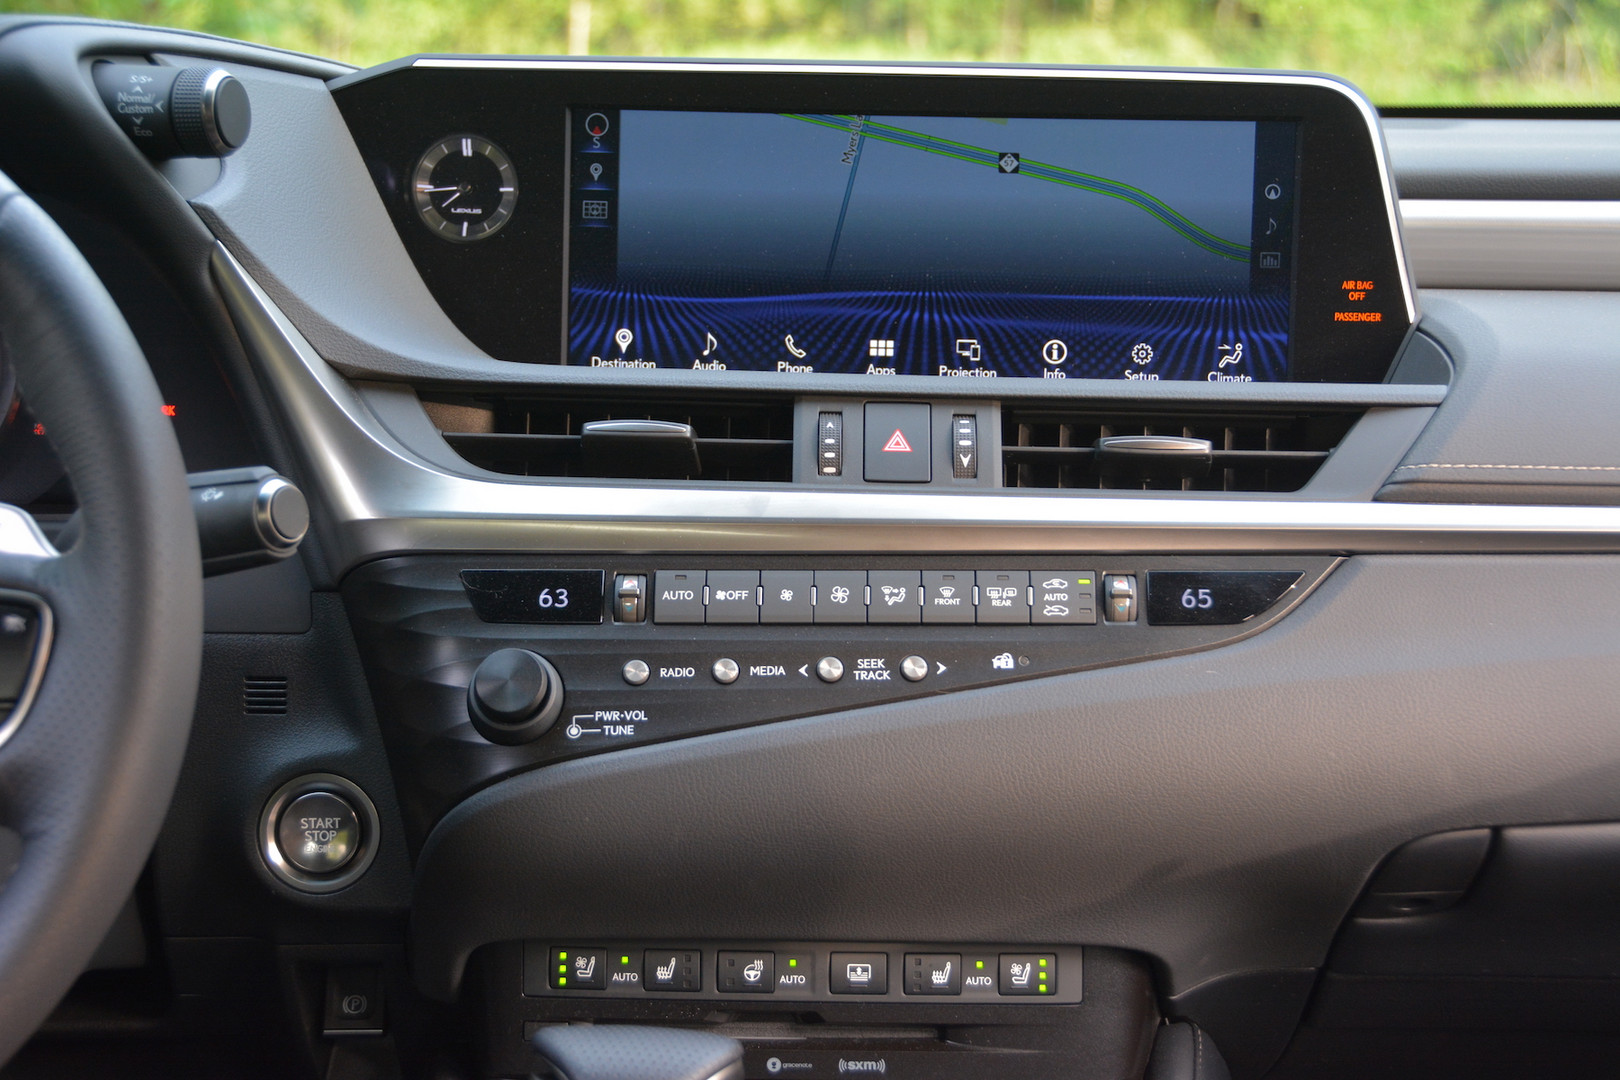 2019 Lexus ES 350 Display Screen